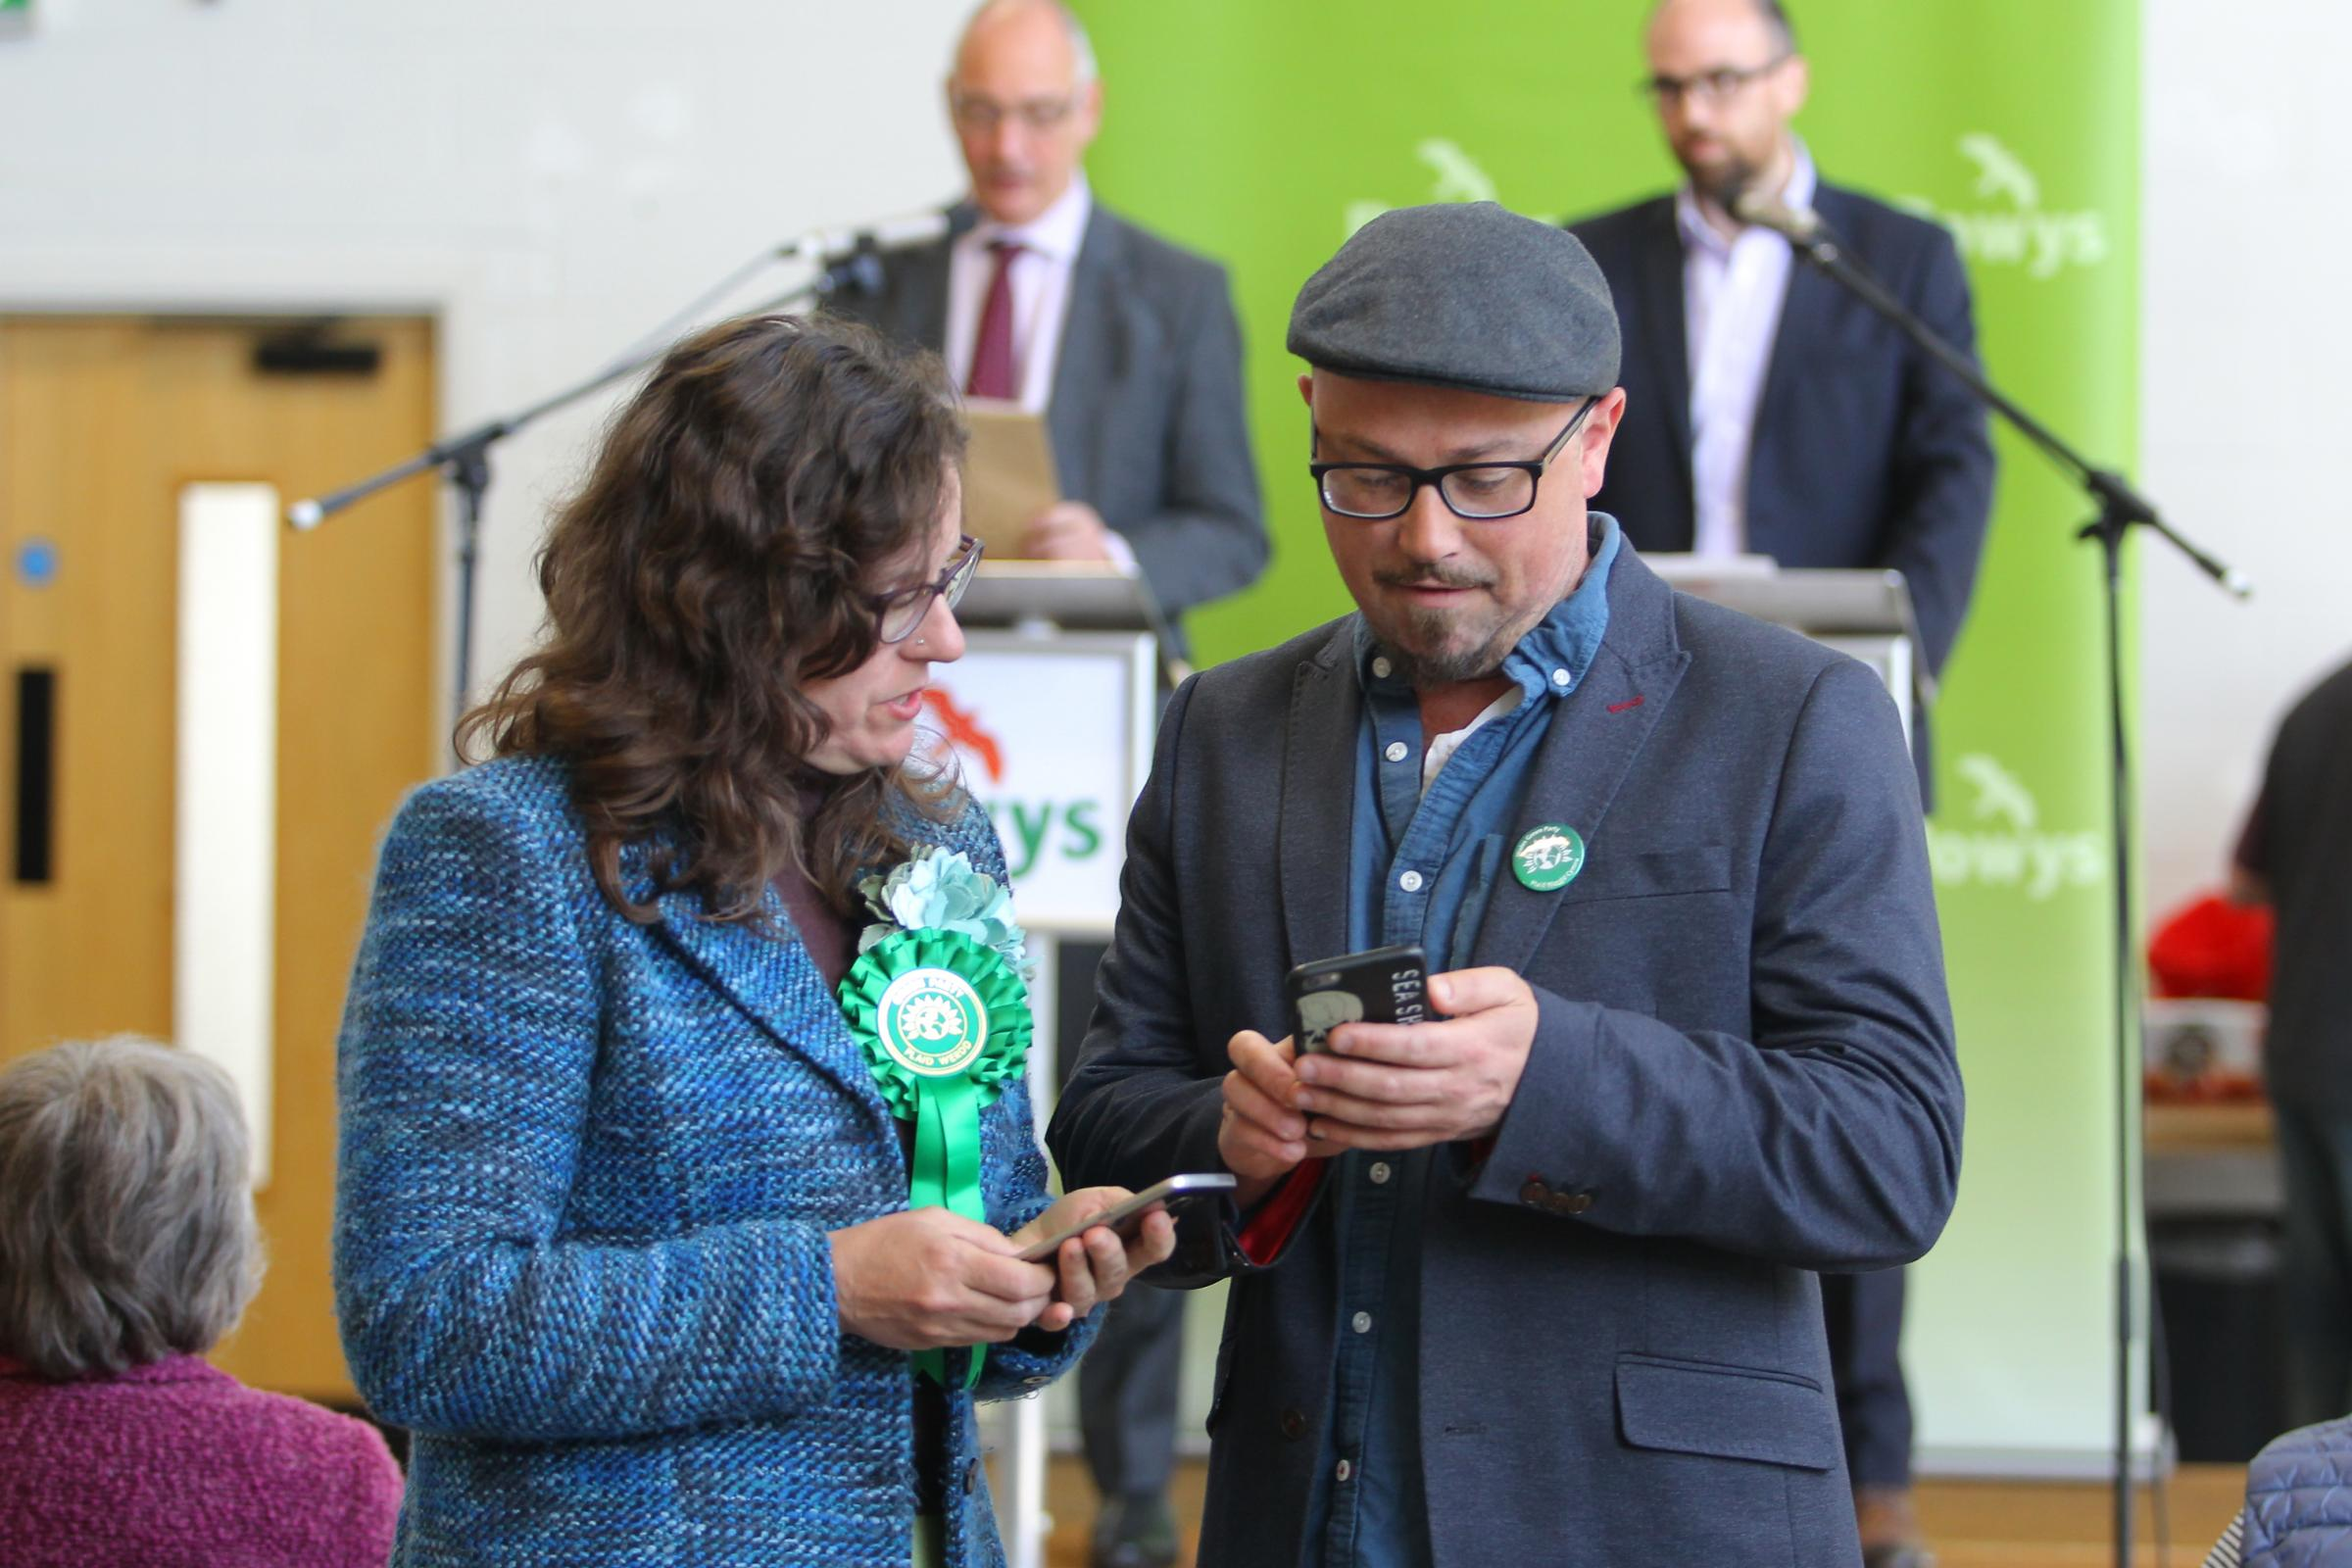 5/5/2017 - Grenville Ham(right), former leader of the Wales Green Party, at the local election count and results for Powys at Builth Wells Showground, on Friday, May 5, 2017.Pic: Mike Sheridan/County Times